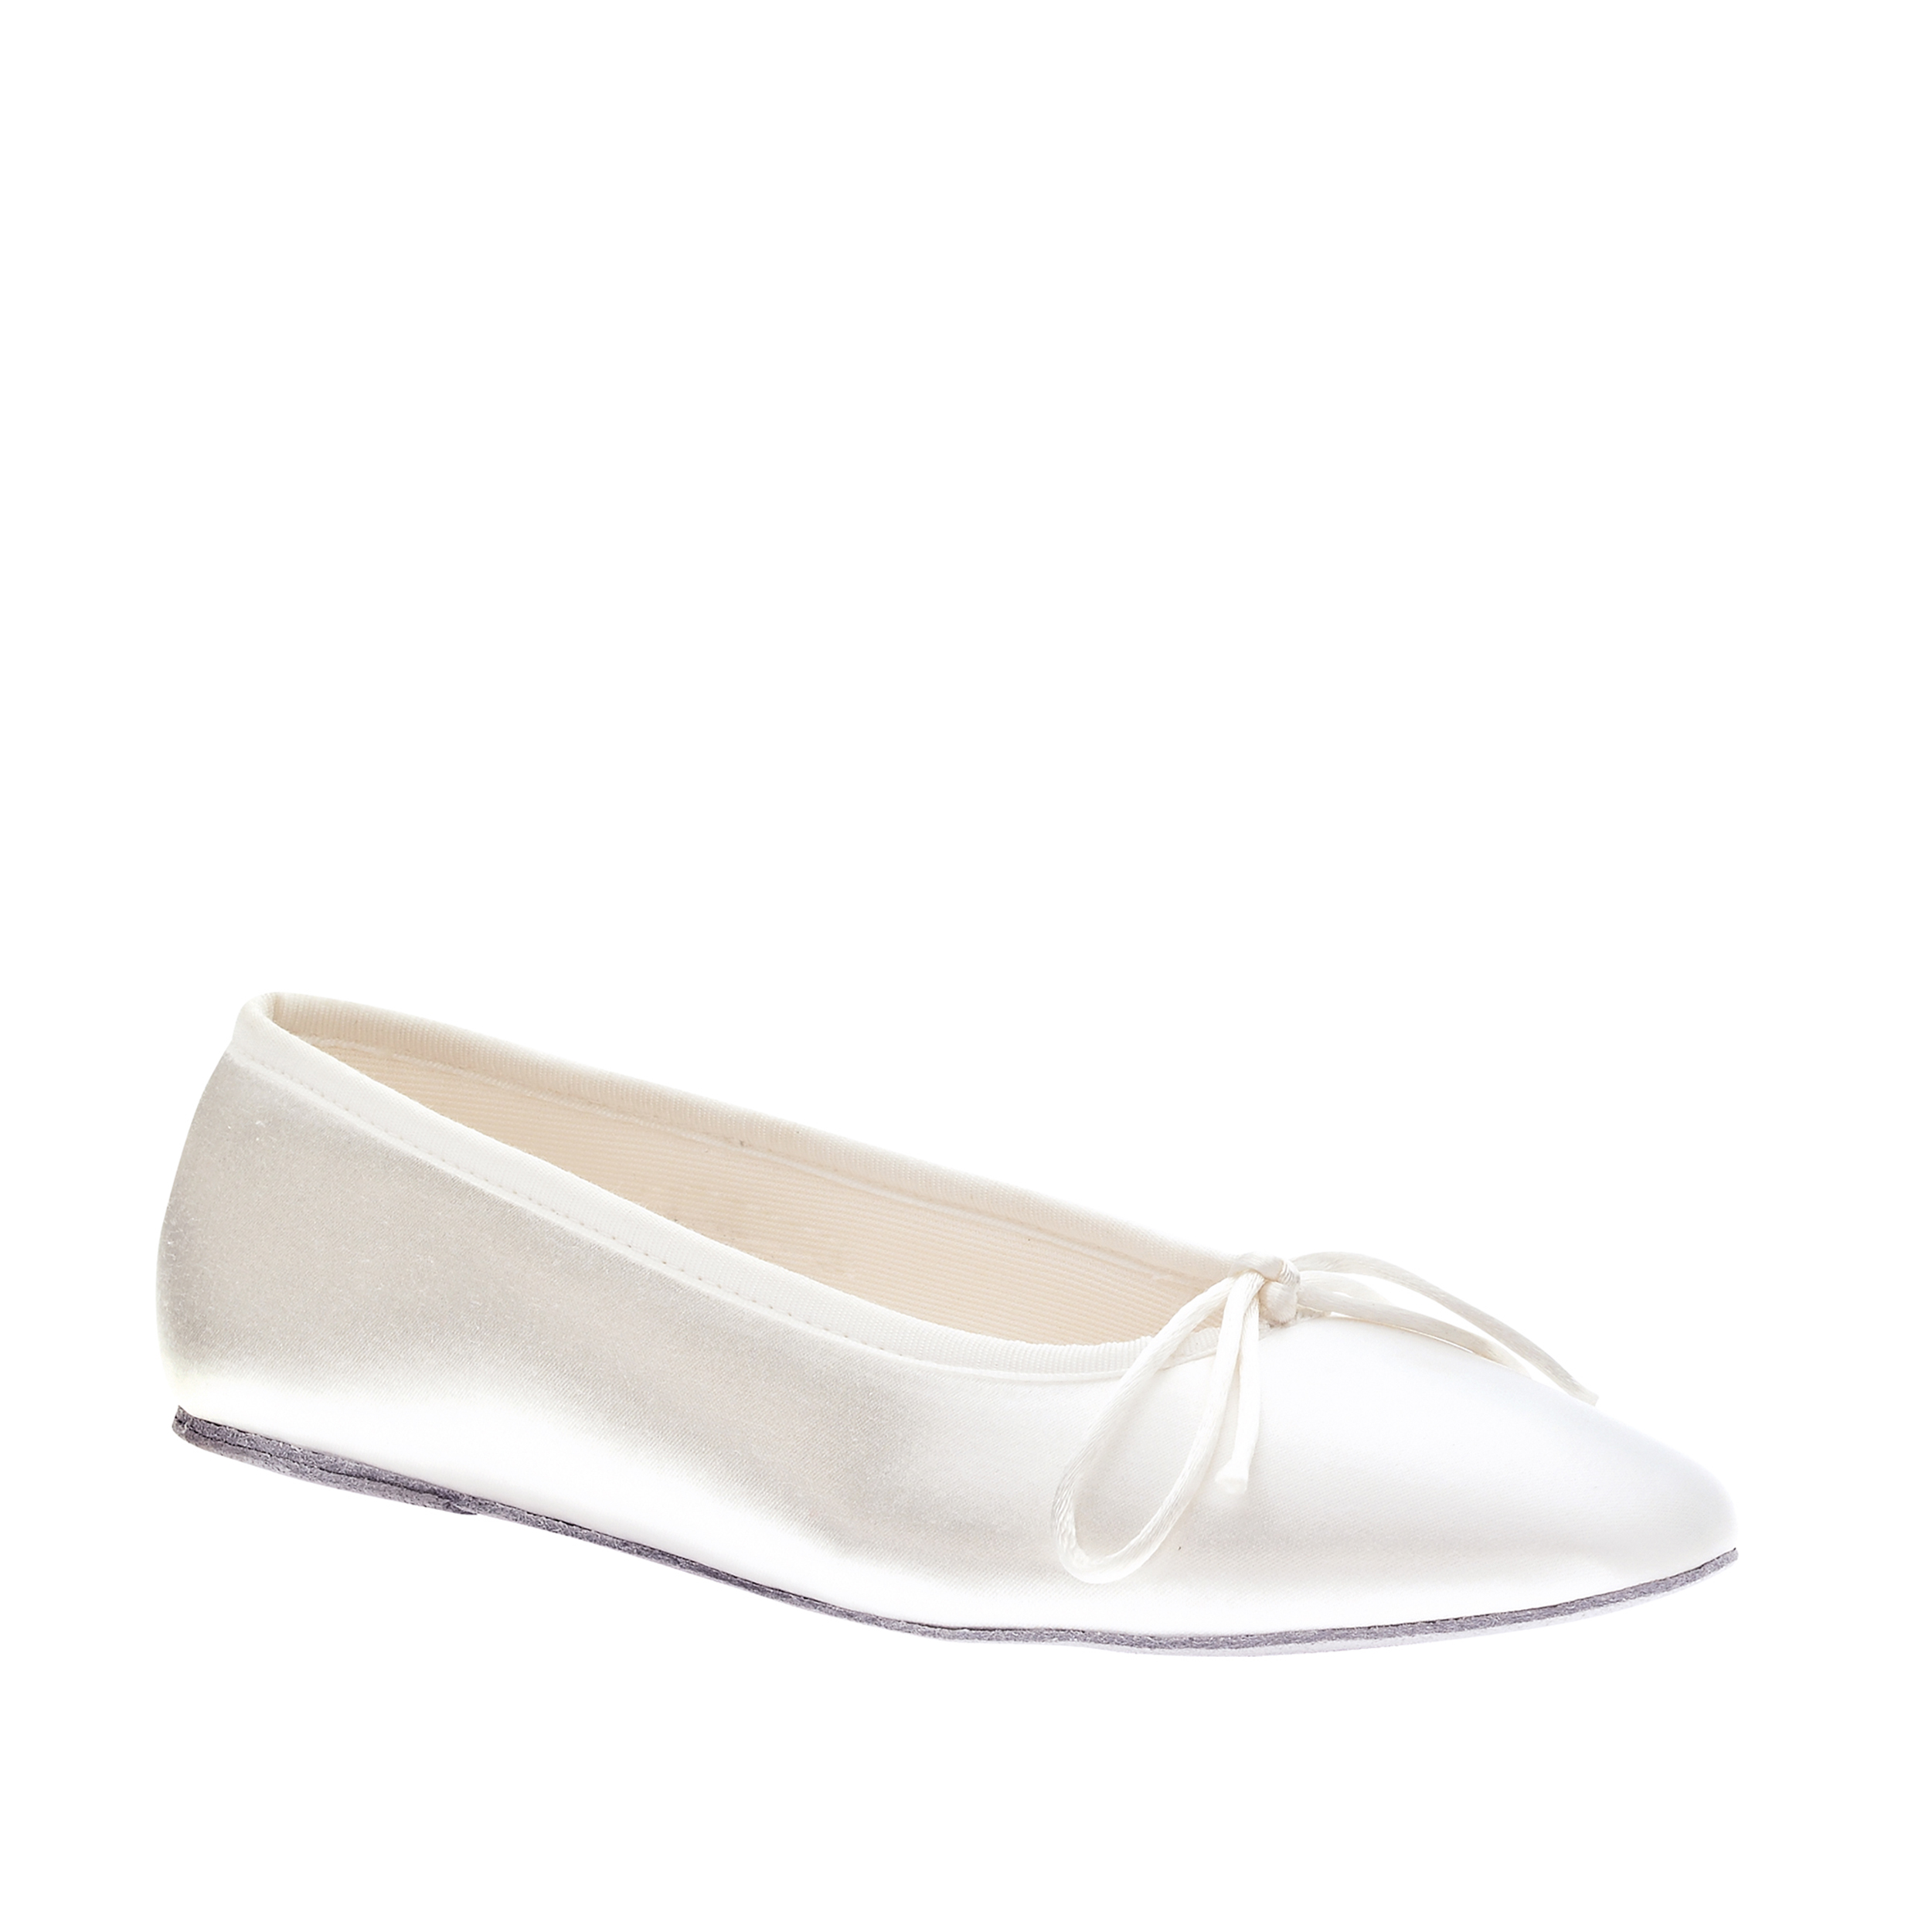 Touch Ups Womens Ballet Flat,White,11.0 W